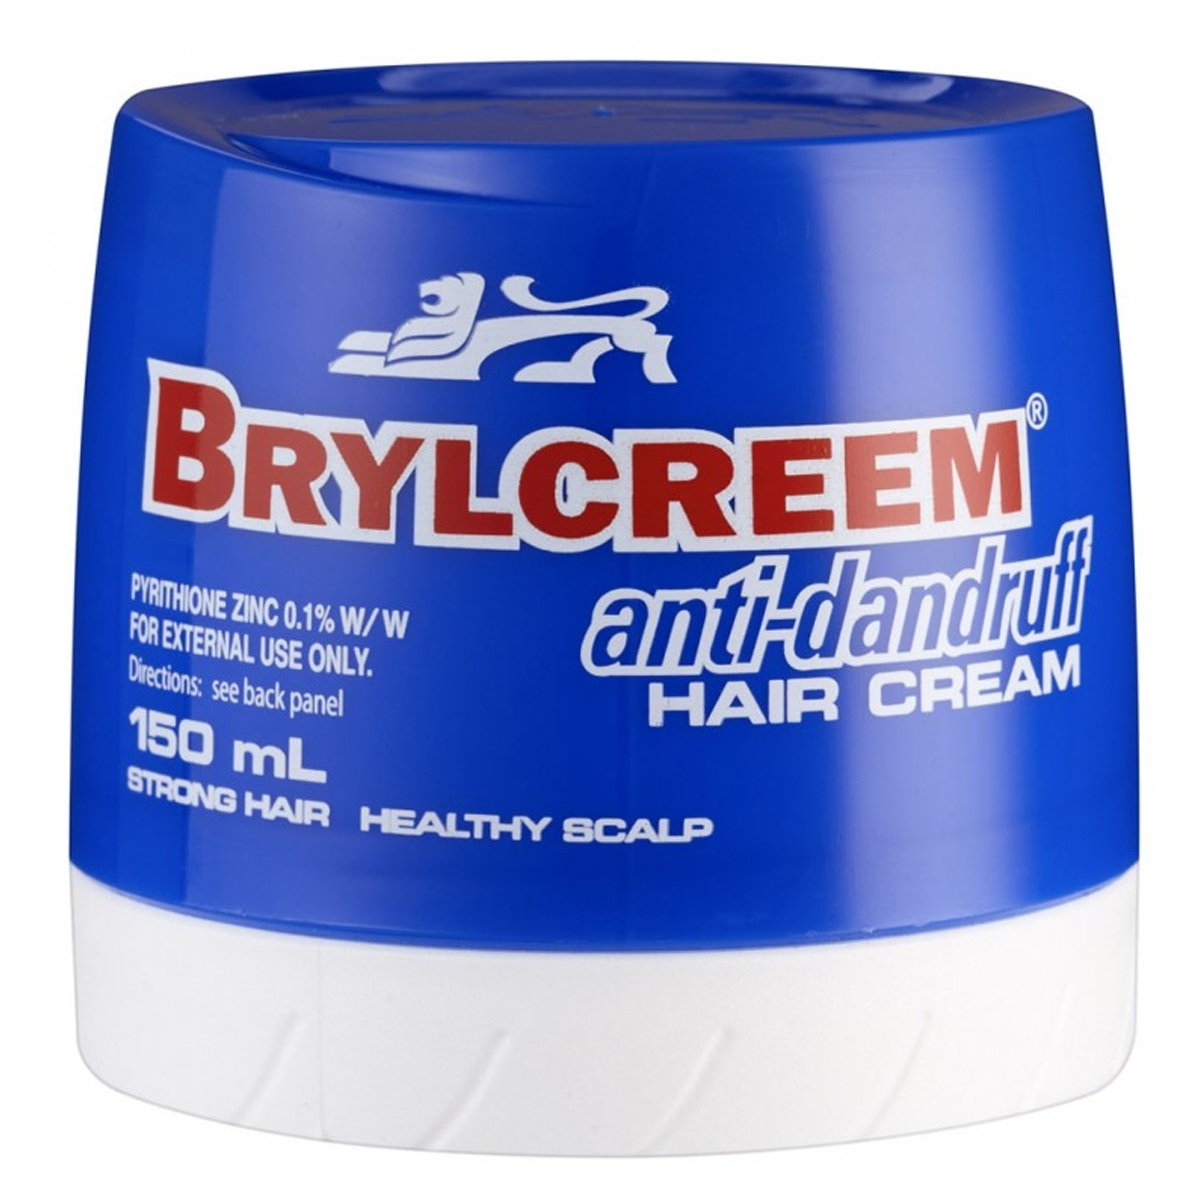 Brylcreem Anti Dandruff Hair Cream 150ml Amcal